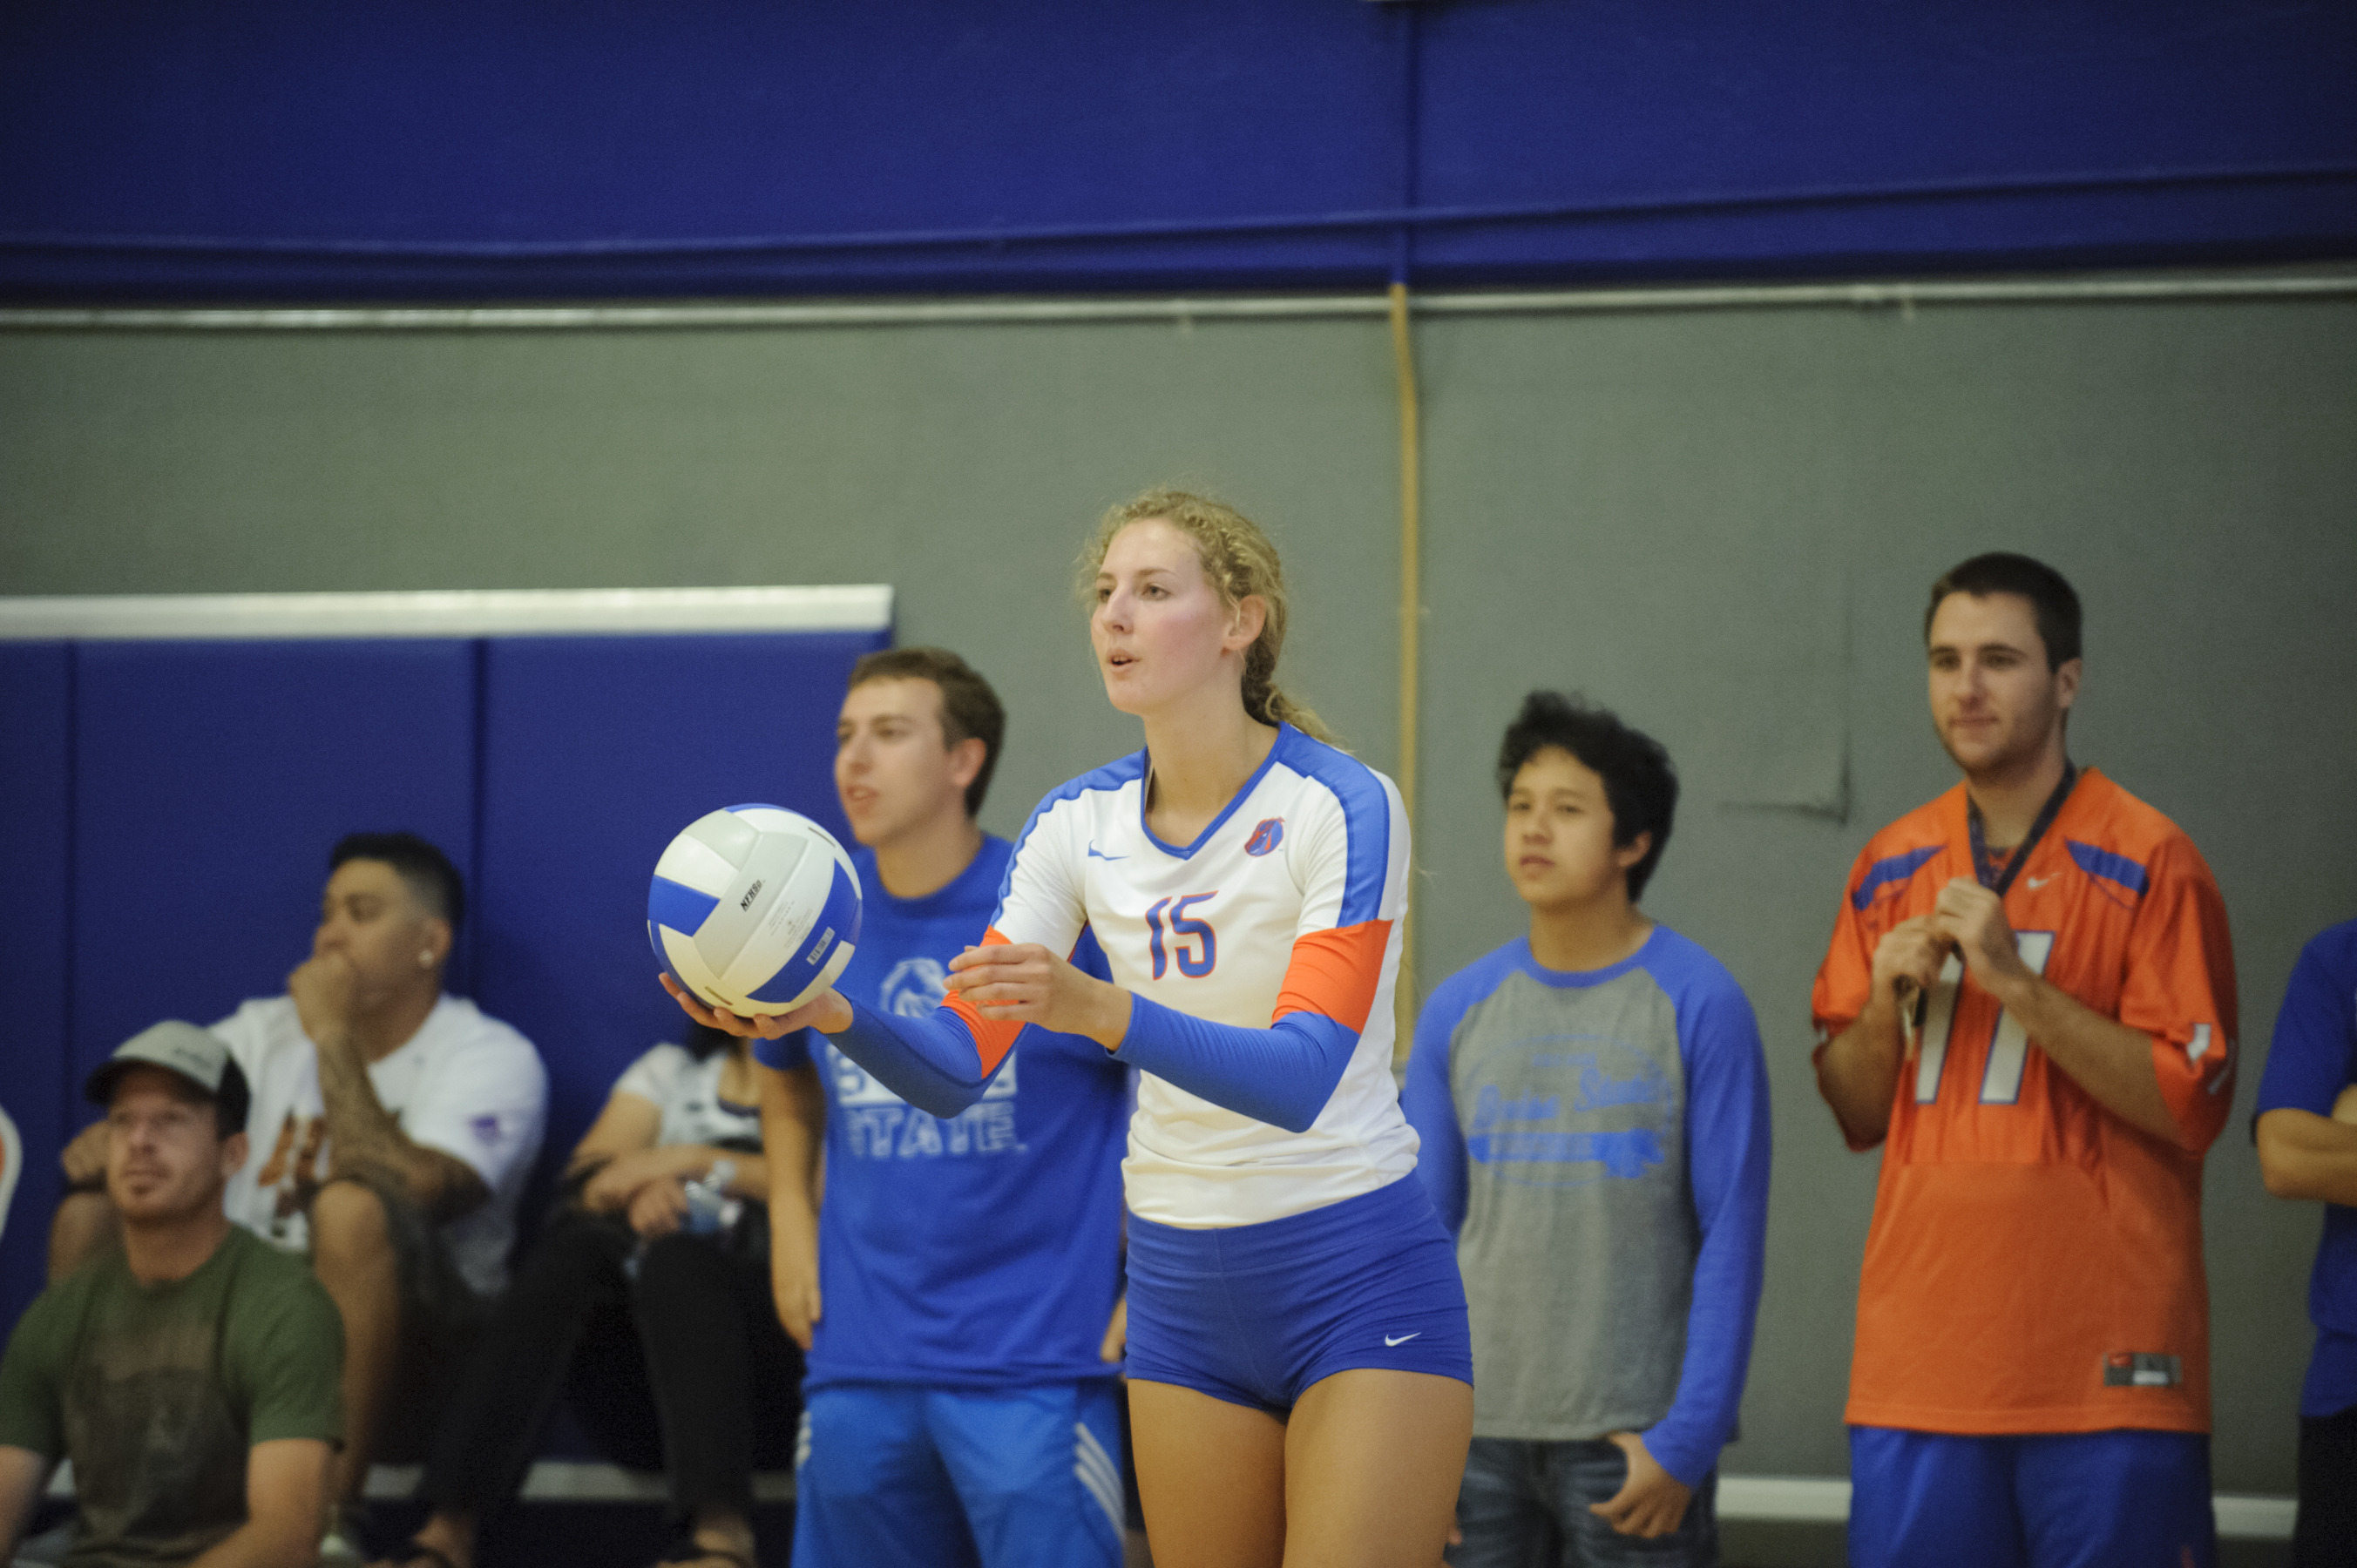 Sierra Nobley led team in kills for fifth time this season.